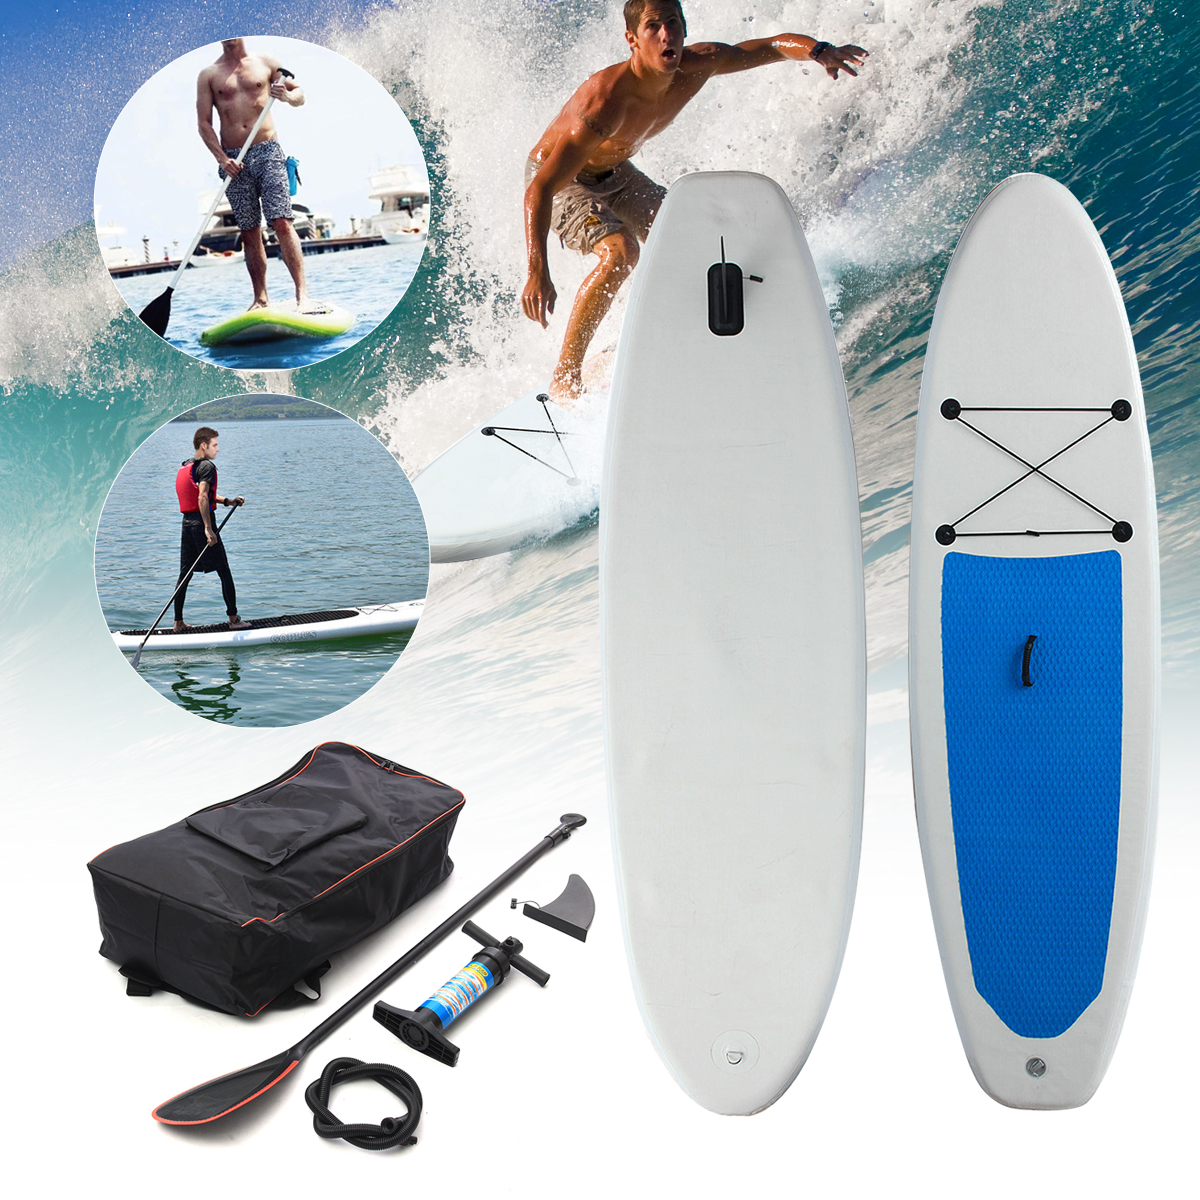 Gofun 122 x 27 x 4 Inch Stand Up Paddle Surfboard Inflatable Board SUP Set Wave Rider + Pump inflatable surf board paddle boat inflatable stand up paddle board inflatable sup board inflatable paddleboard